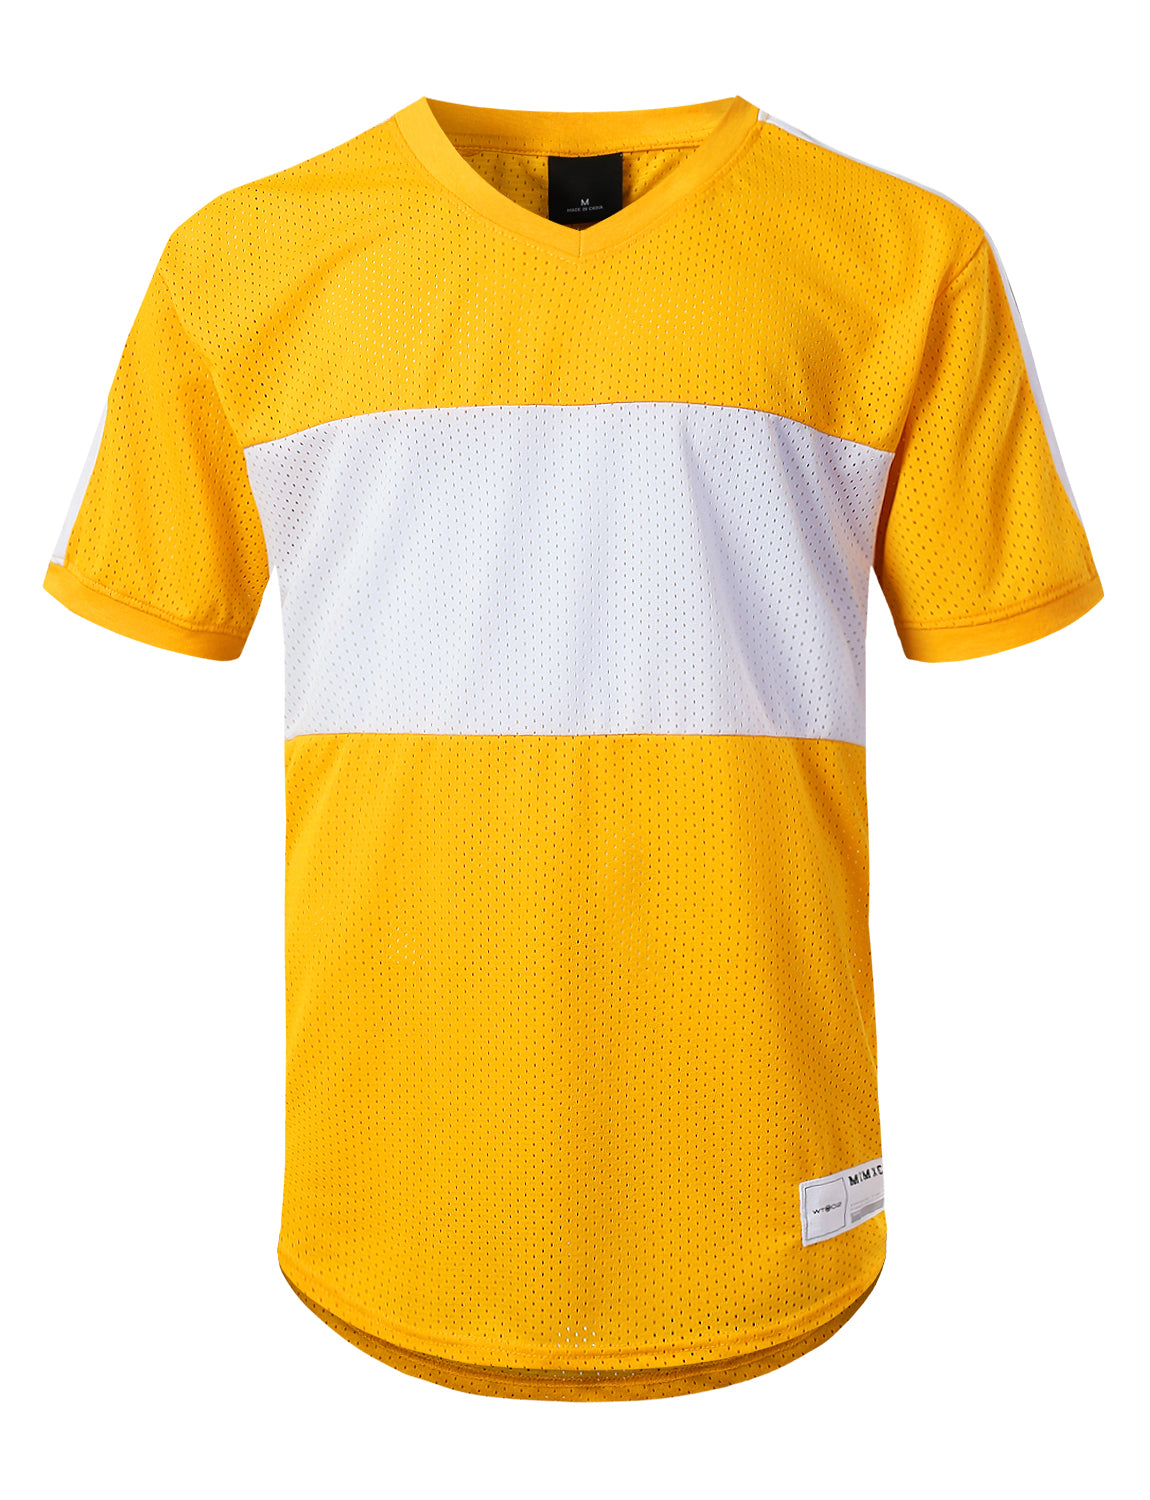 YELLOW 3 Stripe Side Panel Mesh Jersey Tee - URBANCREWS